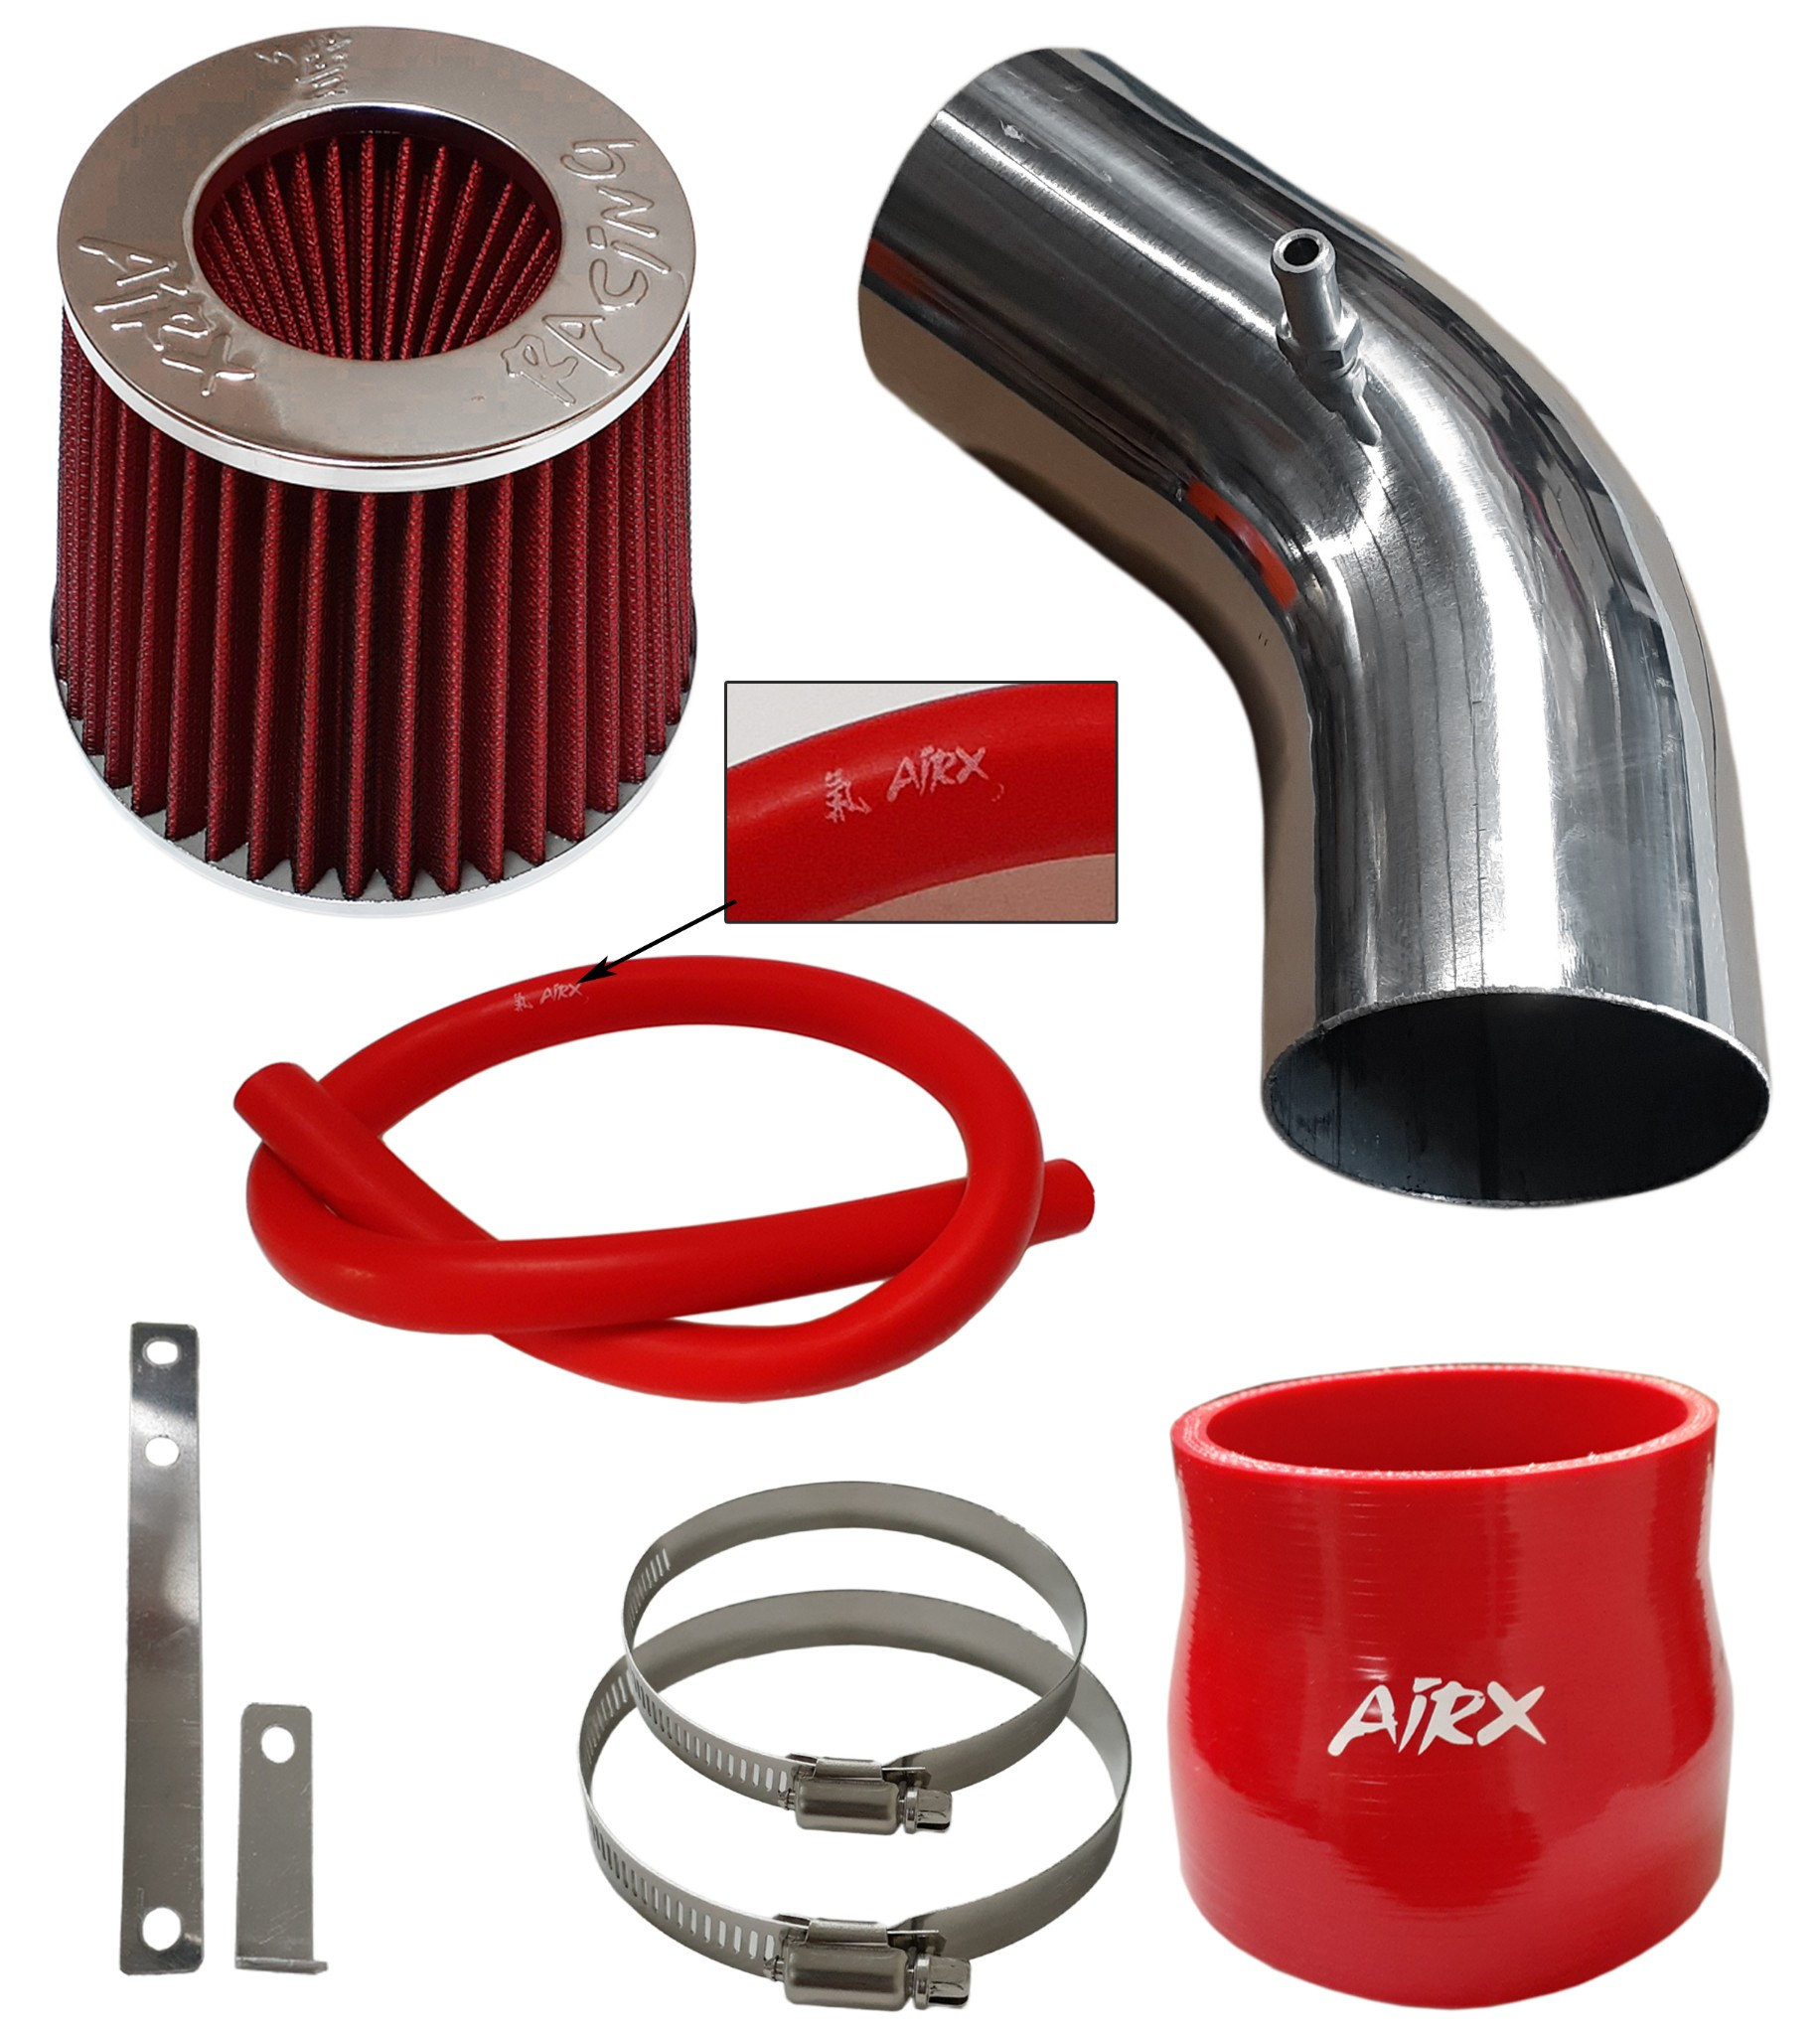 Black Air Intake kit /& Filter For 2002-2006 Acura RSX Type-s Coupe 2.0L 4Cyl